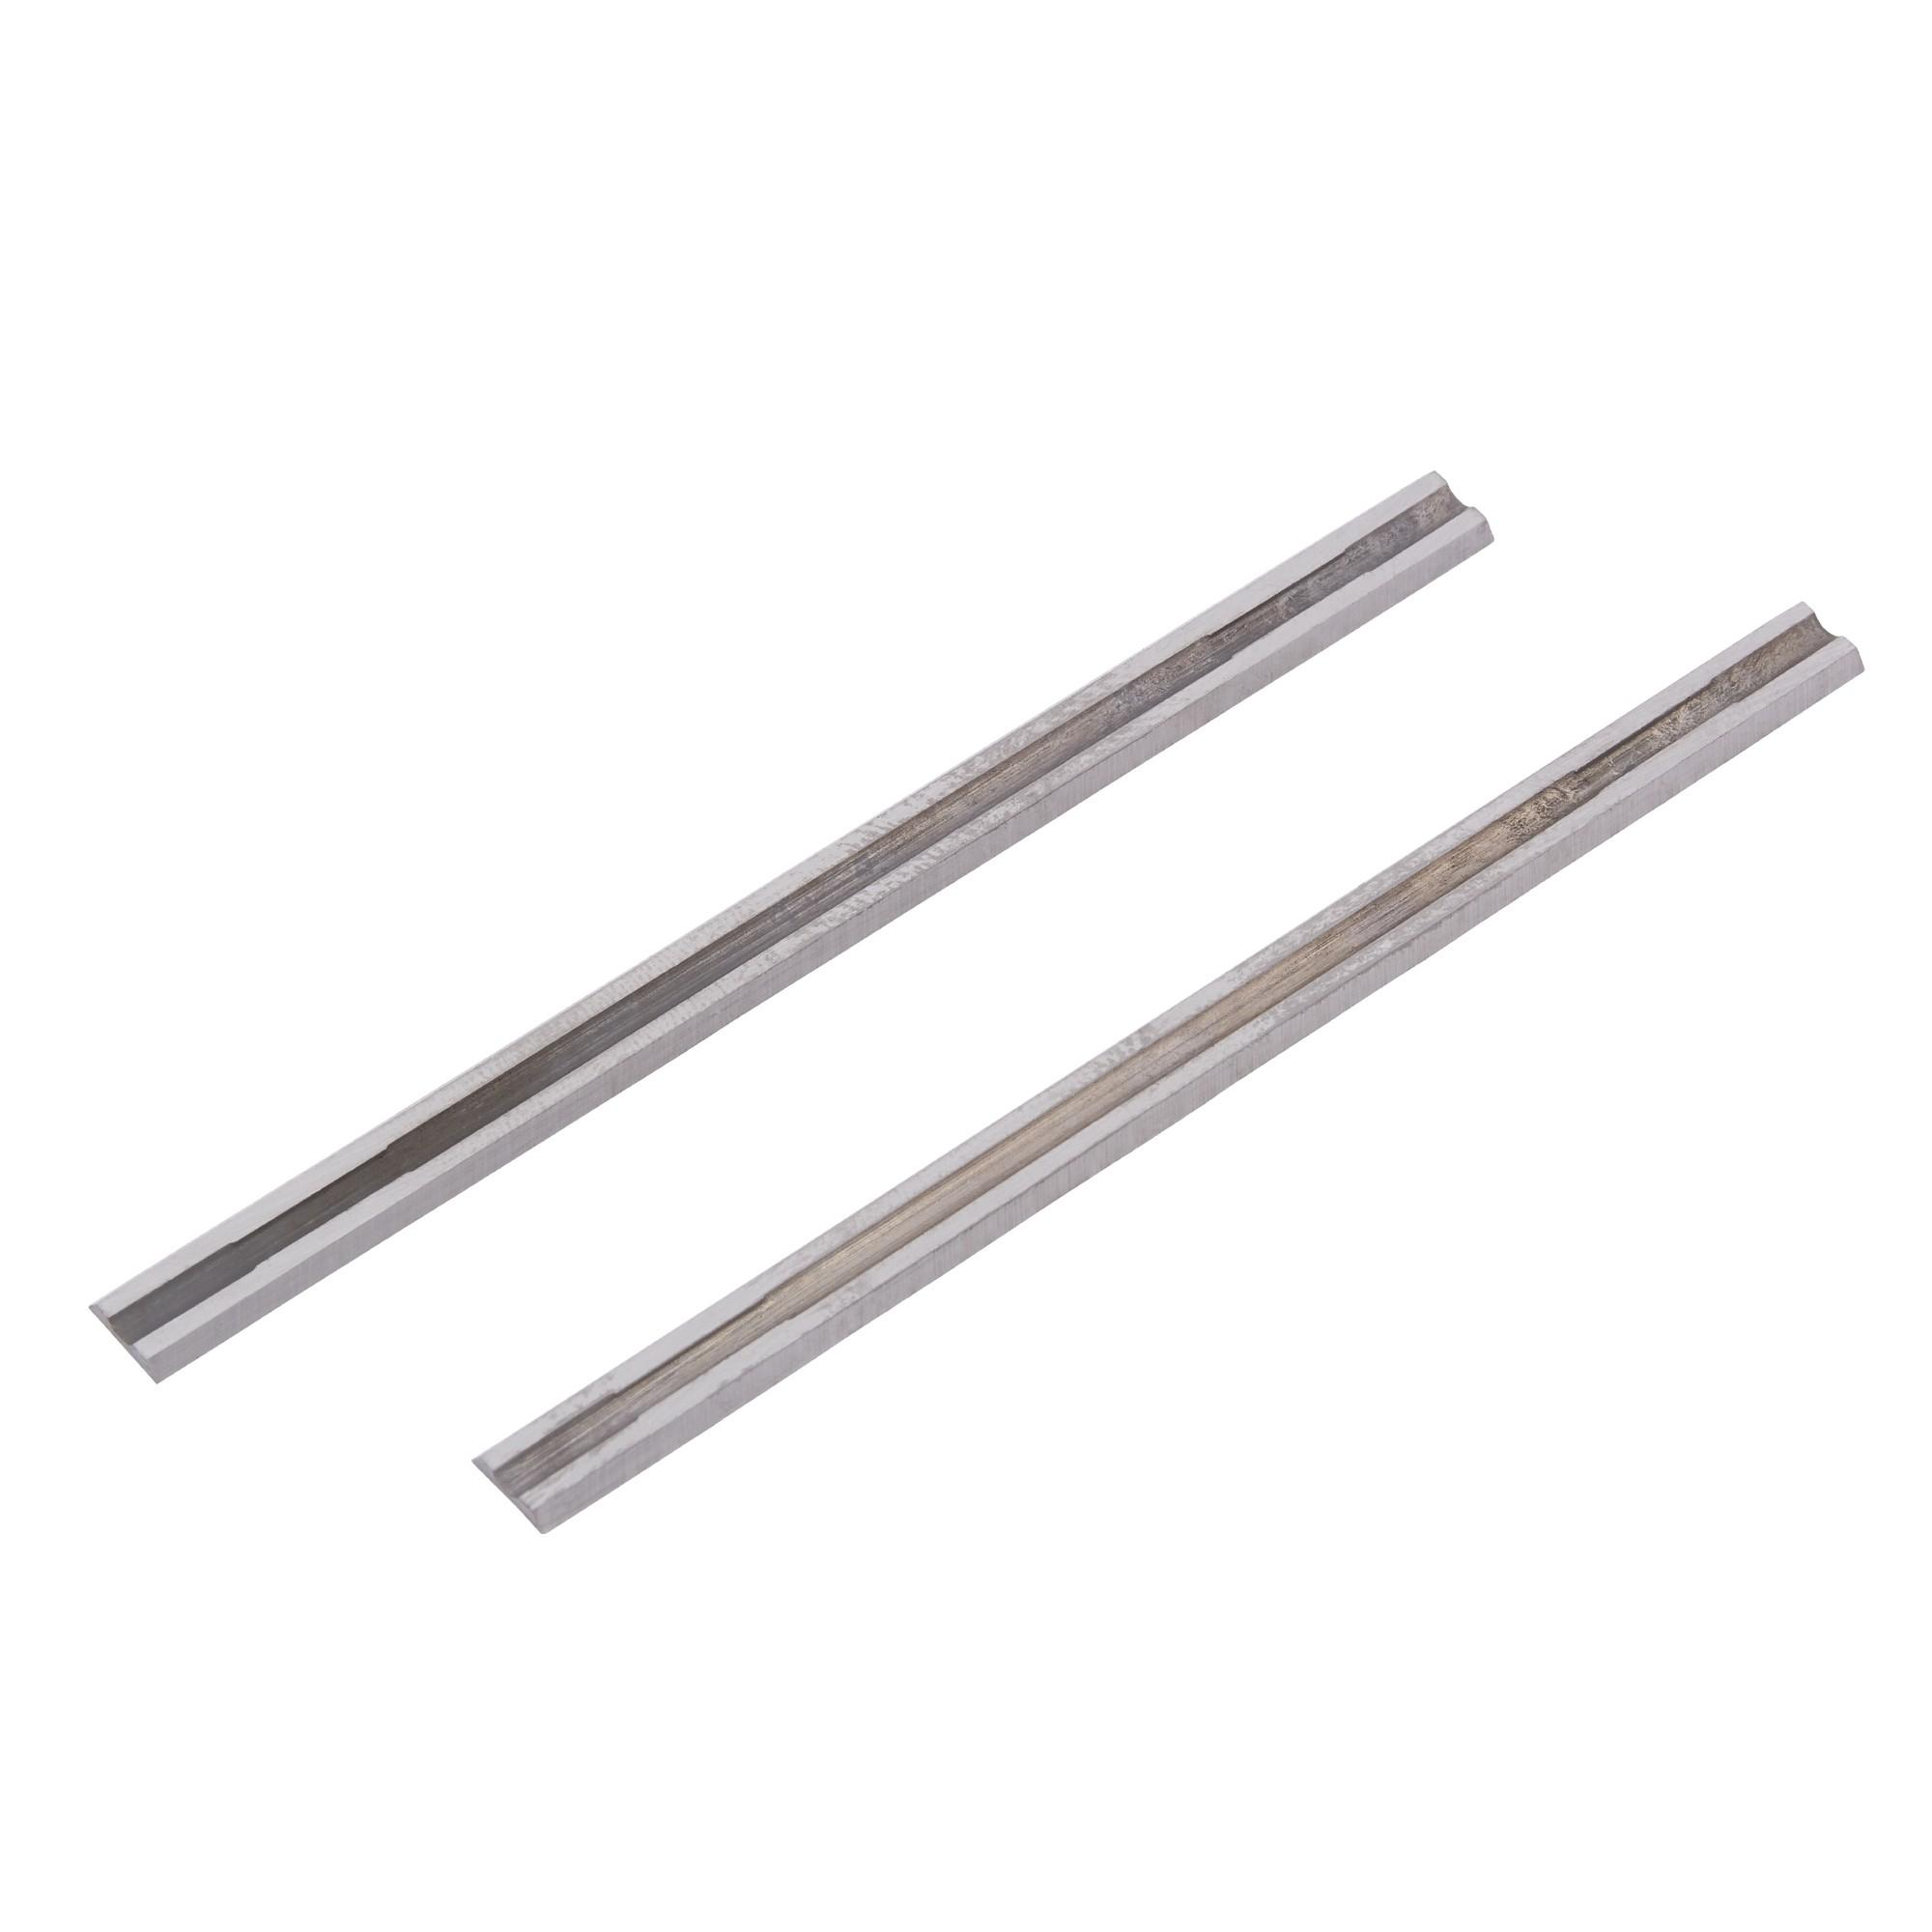 Trend CR/PB29 Carbide Planer Blades For Power Planers